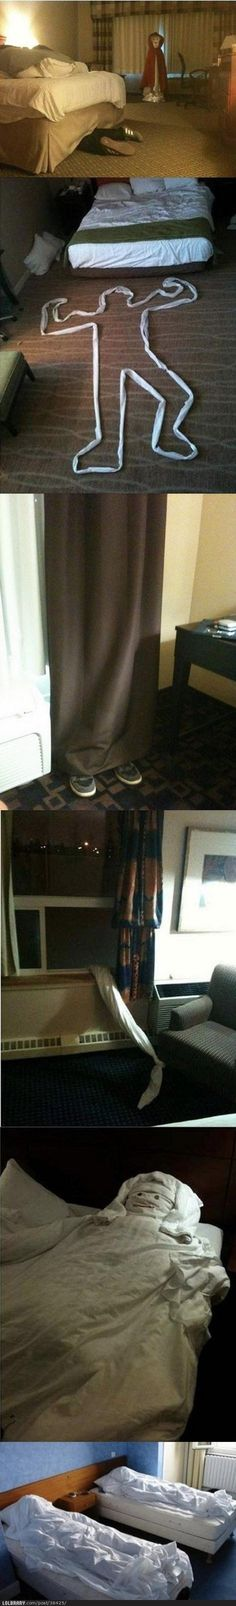 How to scare the shit out of housekeeping.  I am totally do this!